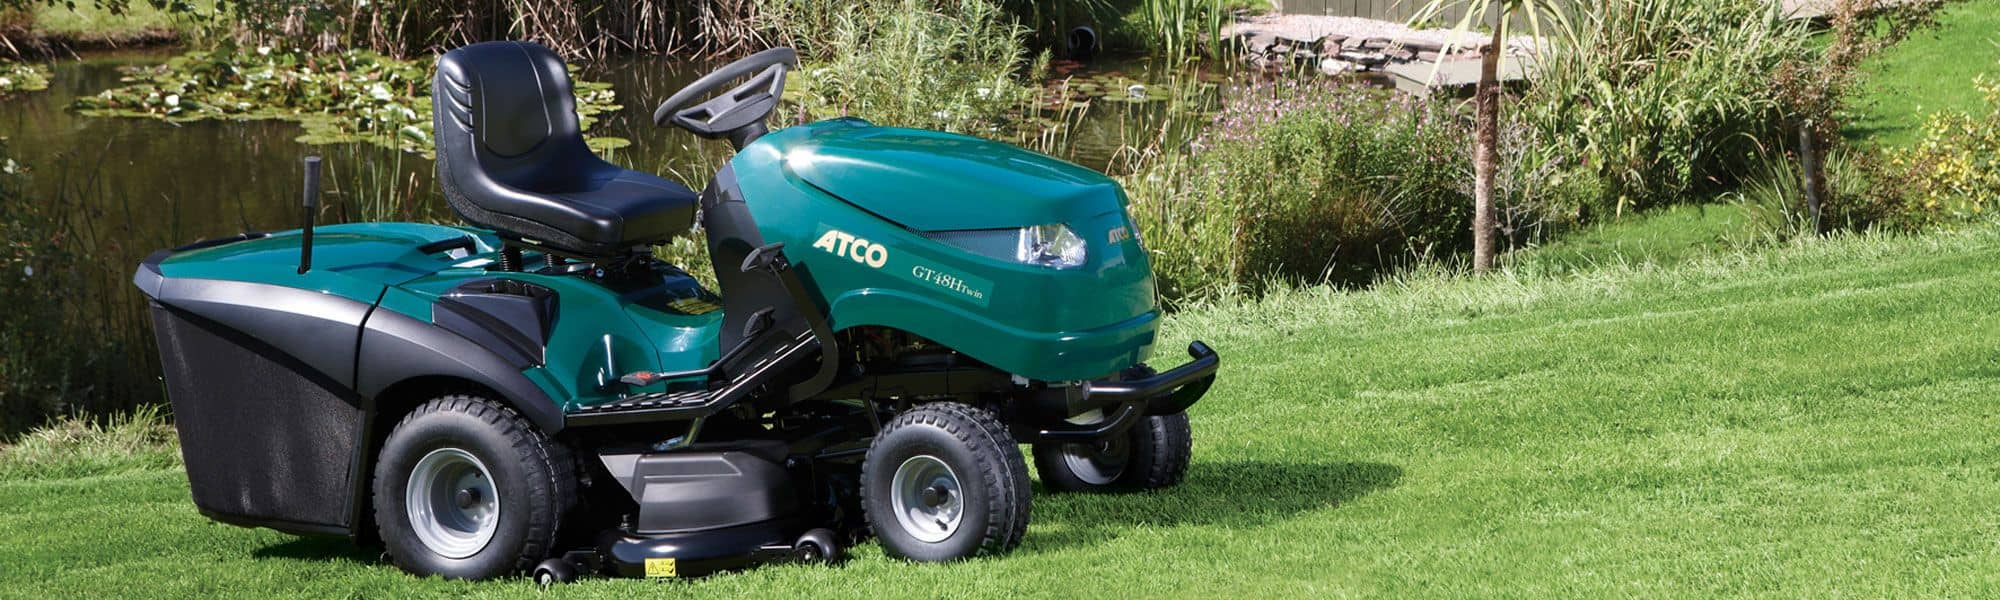 Atco ride on lawnmower